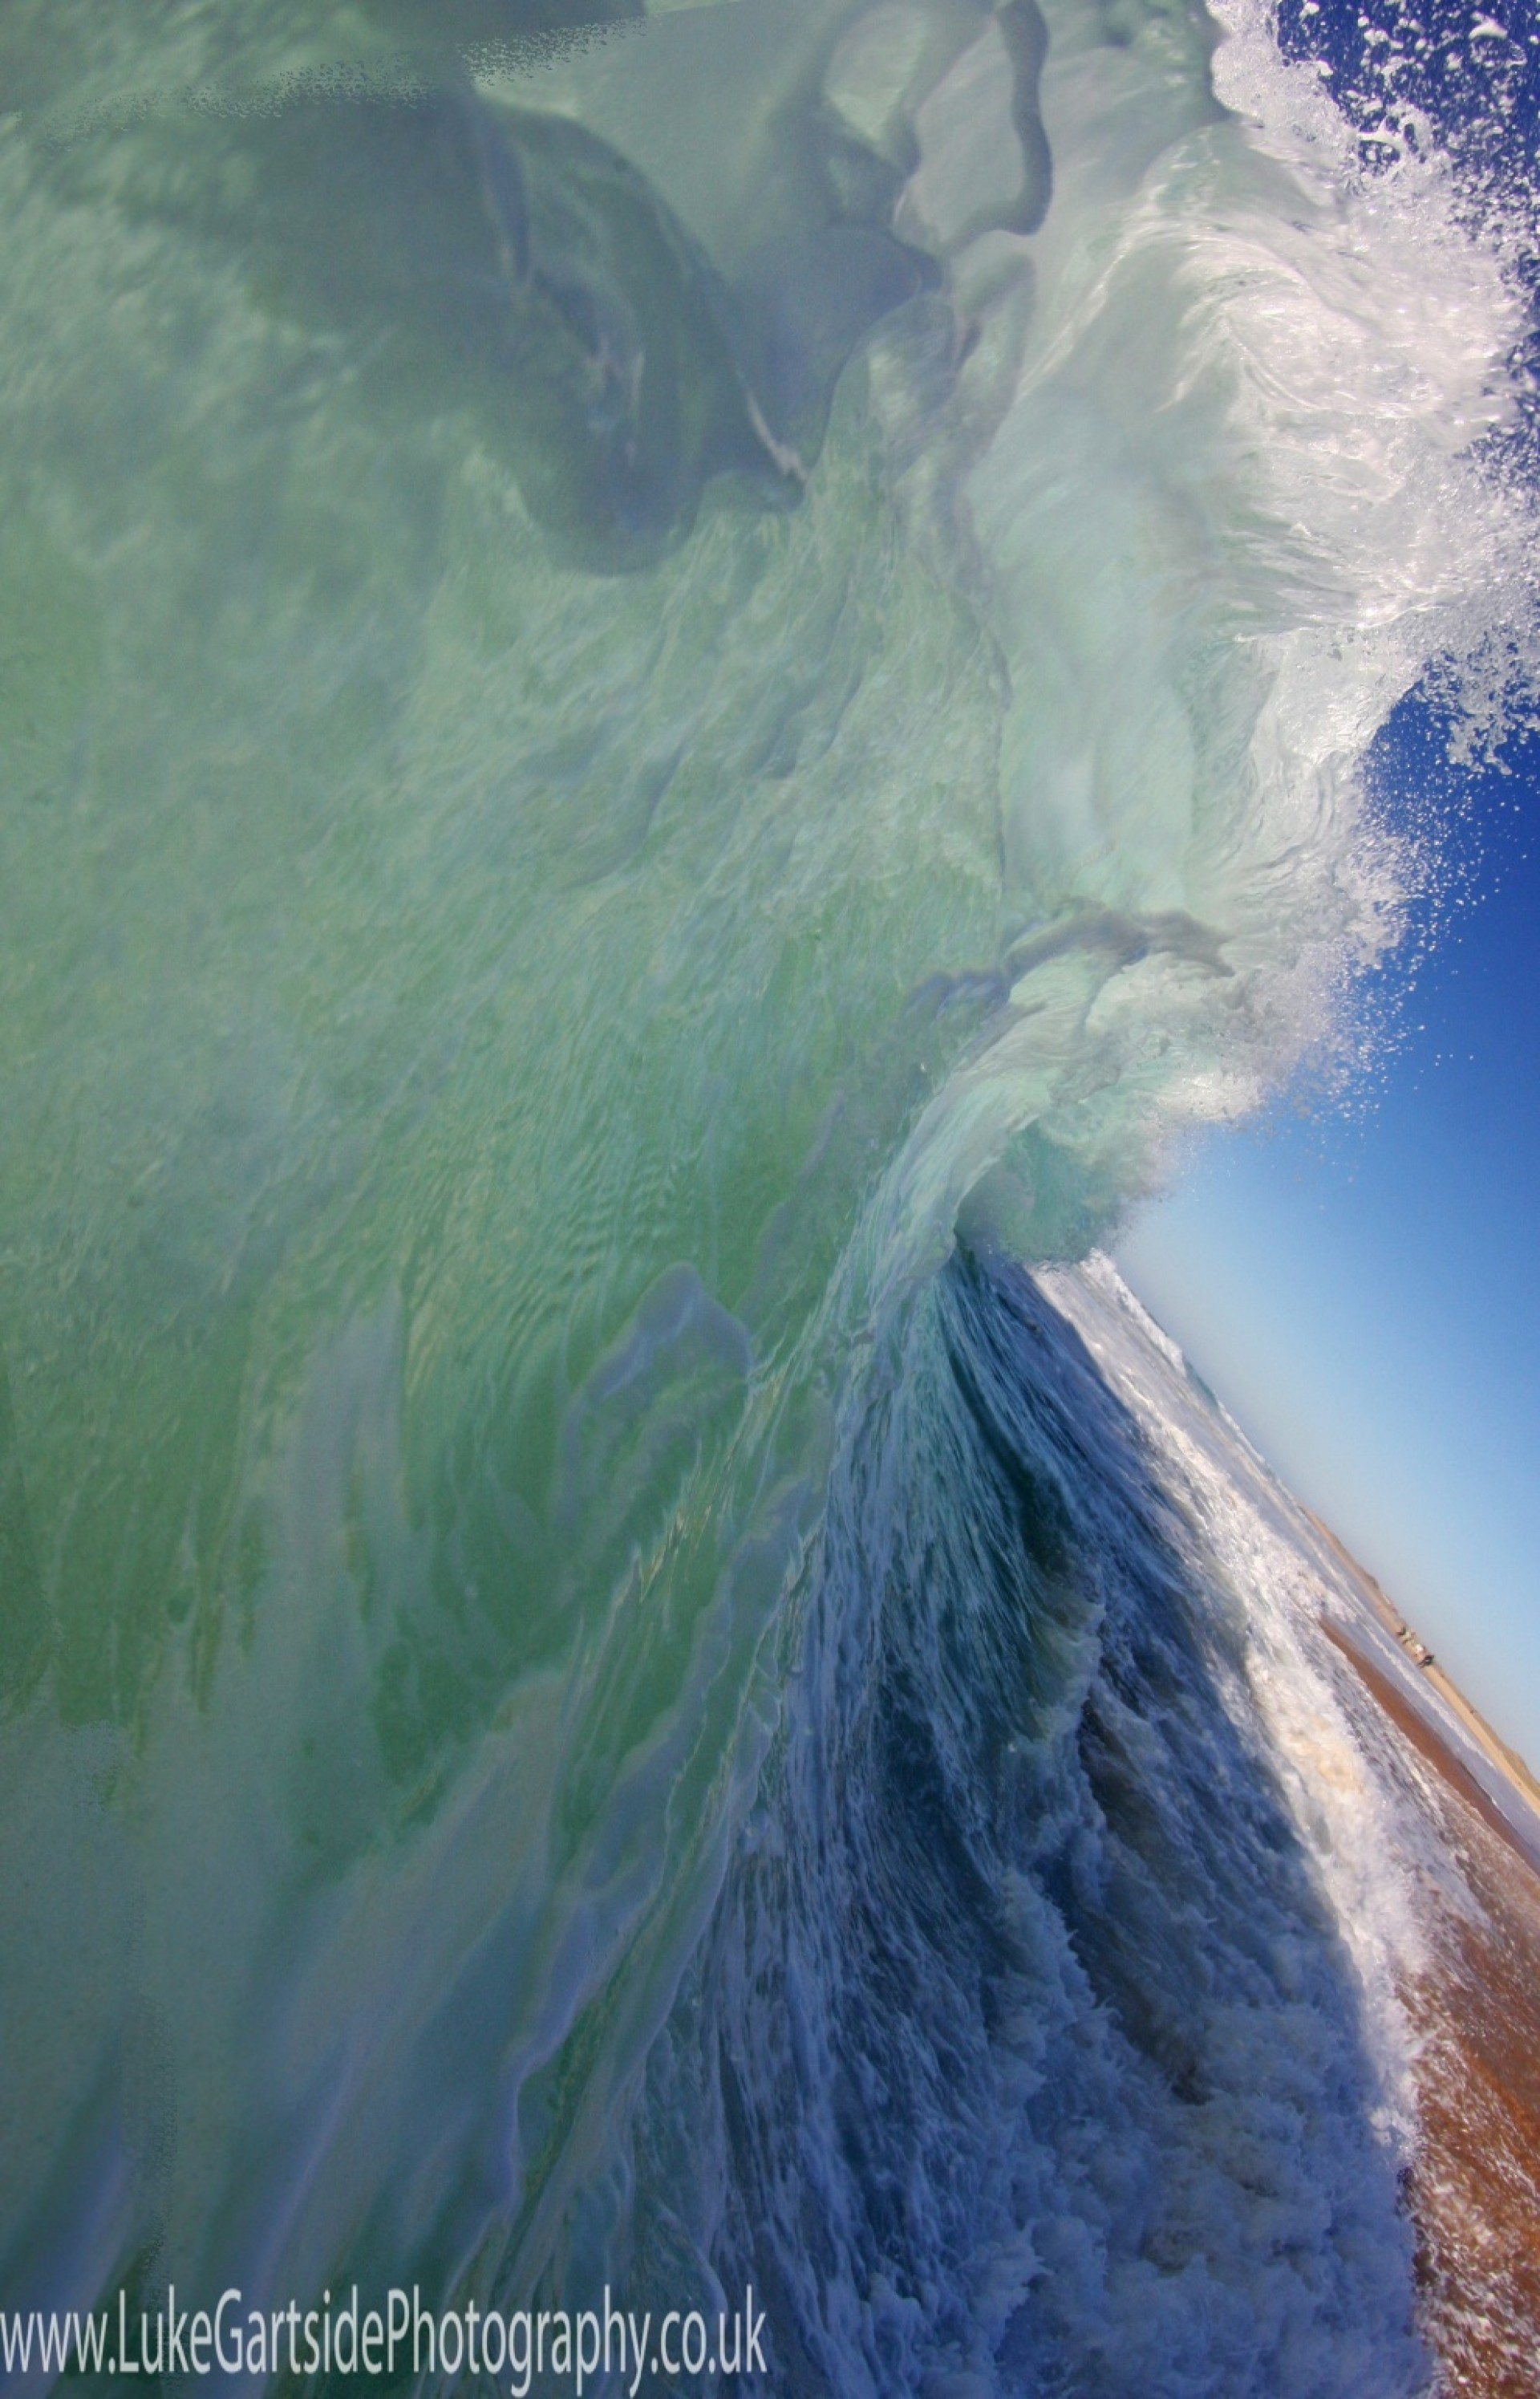 Luke Gartside's photo of Hossegor (La Graviere)